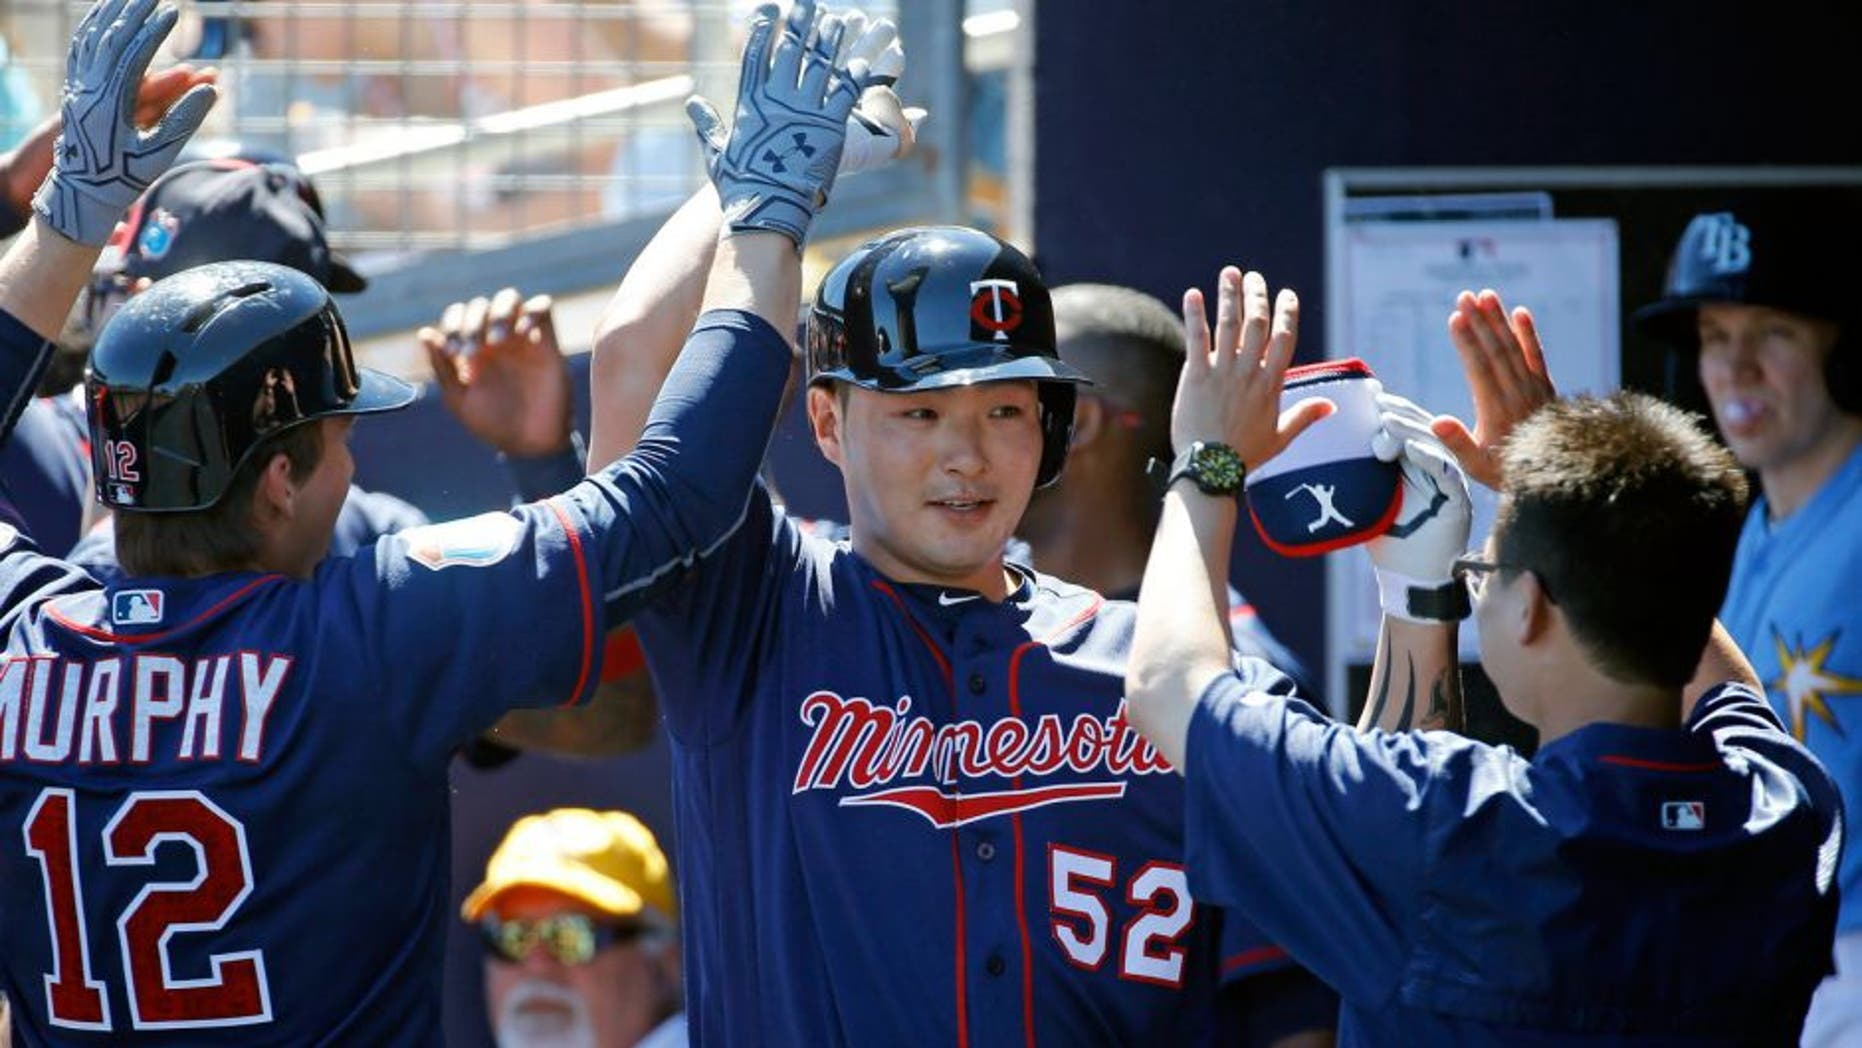 FILE - In this March 6, 2016, file photo, Minnesota Twins' Byung Ho Park, center, of South Korea, high-fives teammates in the dugout after hitting a grand slam in the first inning of a spring training baseball game against the Tampa Bay Rays in Port Charlotte, Fla. The Korean slugger is excited about making the transition from his native homeland to the major leagues this season and aims to make noise with his bat while quietly going about his business off the field and getting acclimated to life more than 7,500 miles from Seoul. (AP Photo/Patrick Semansky, FILE)